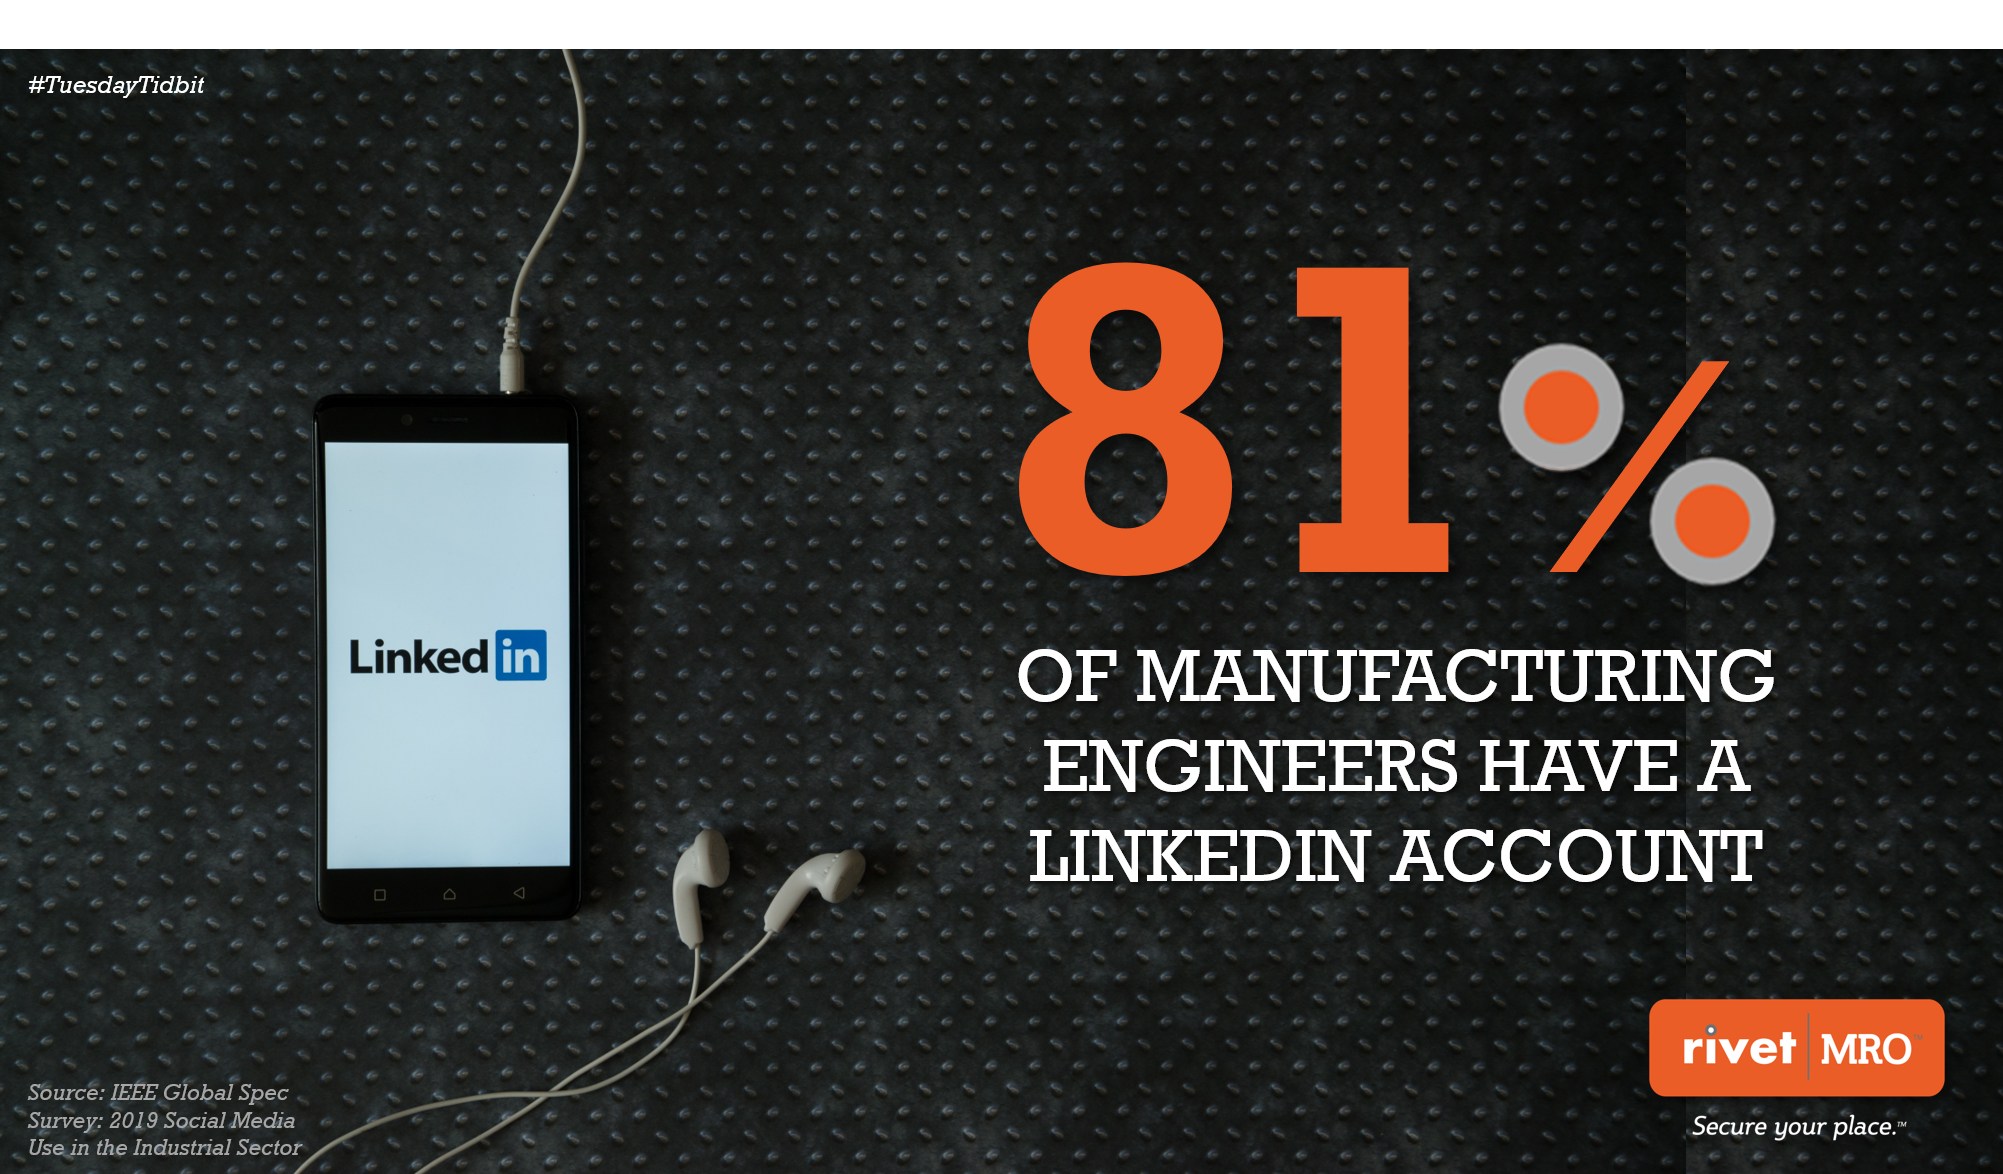 Manufacturing LinkedIn Tuesday Tidbit by Rivet MRO Industrial Marketing Agency and Distributor Co-op Marketing Consultant.png